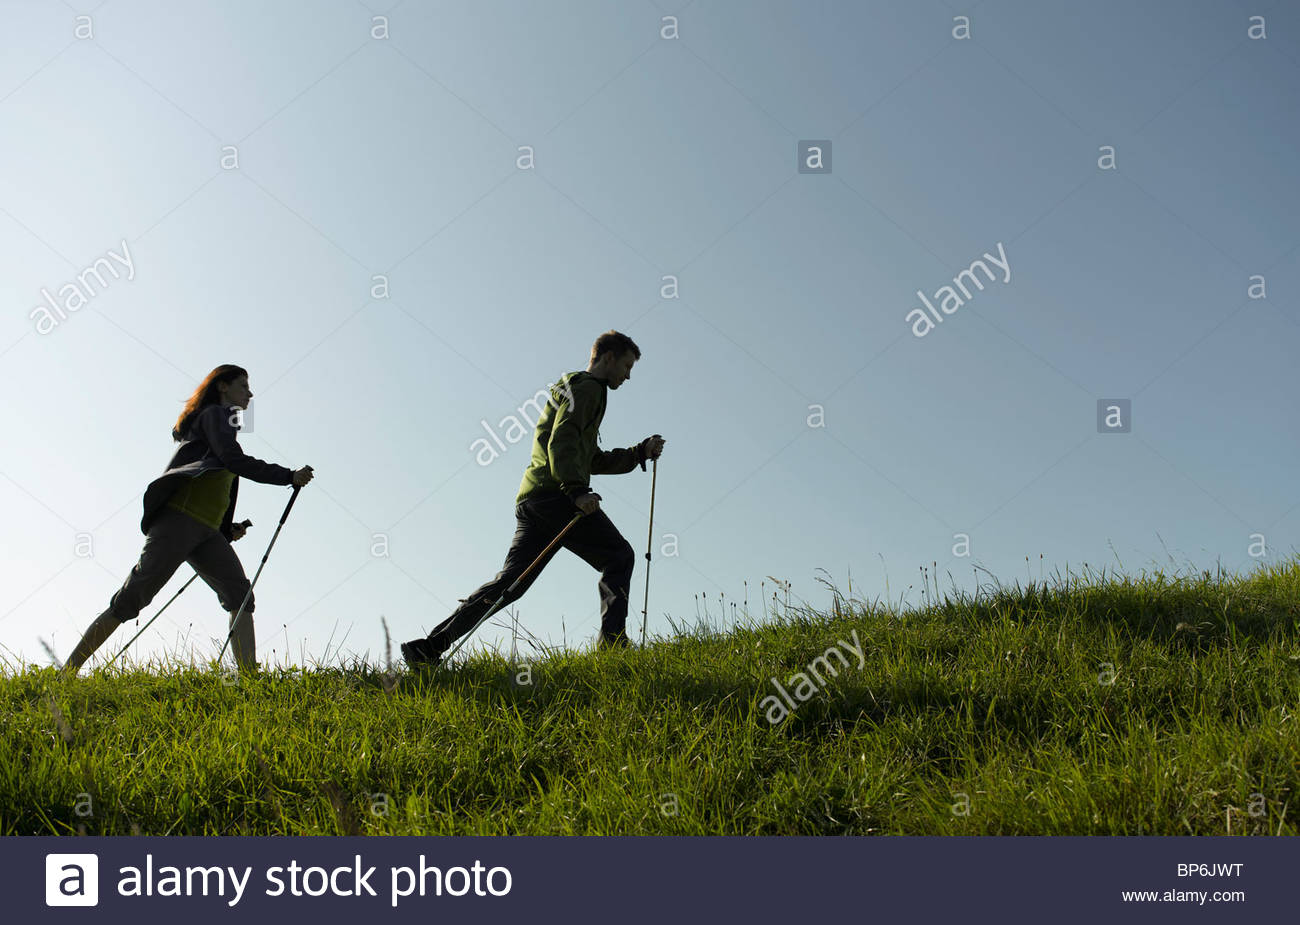 A couple out hiking, using walking poles - Stock Image